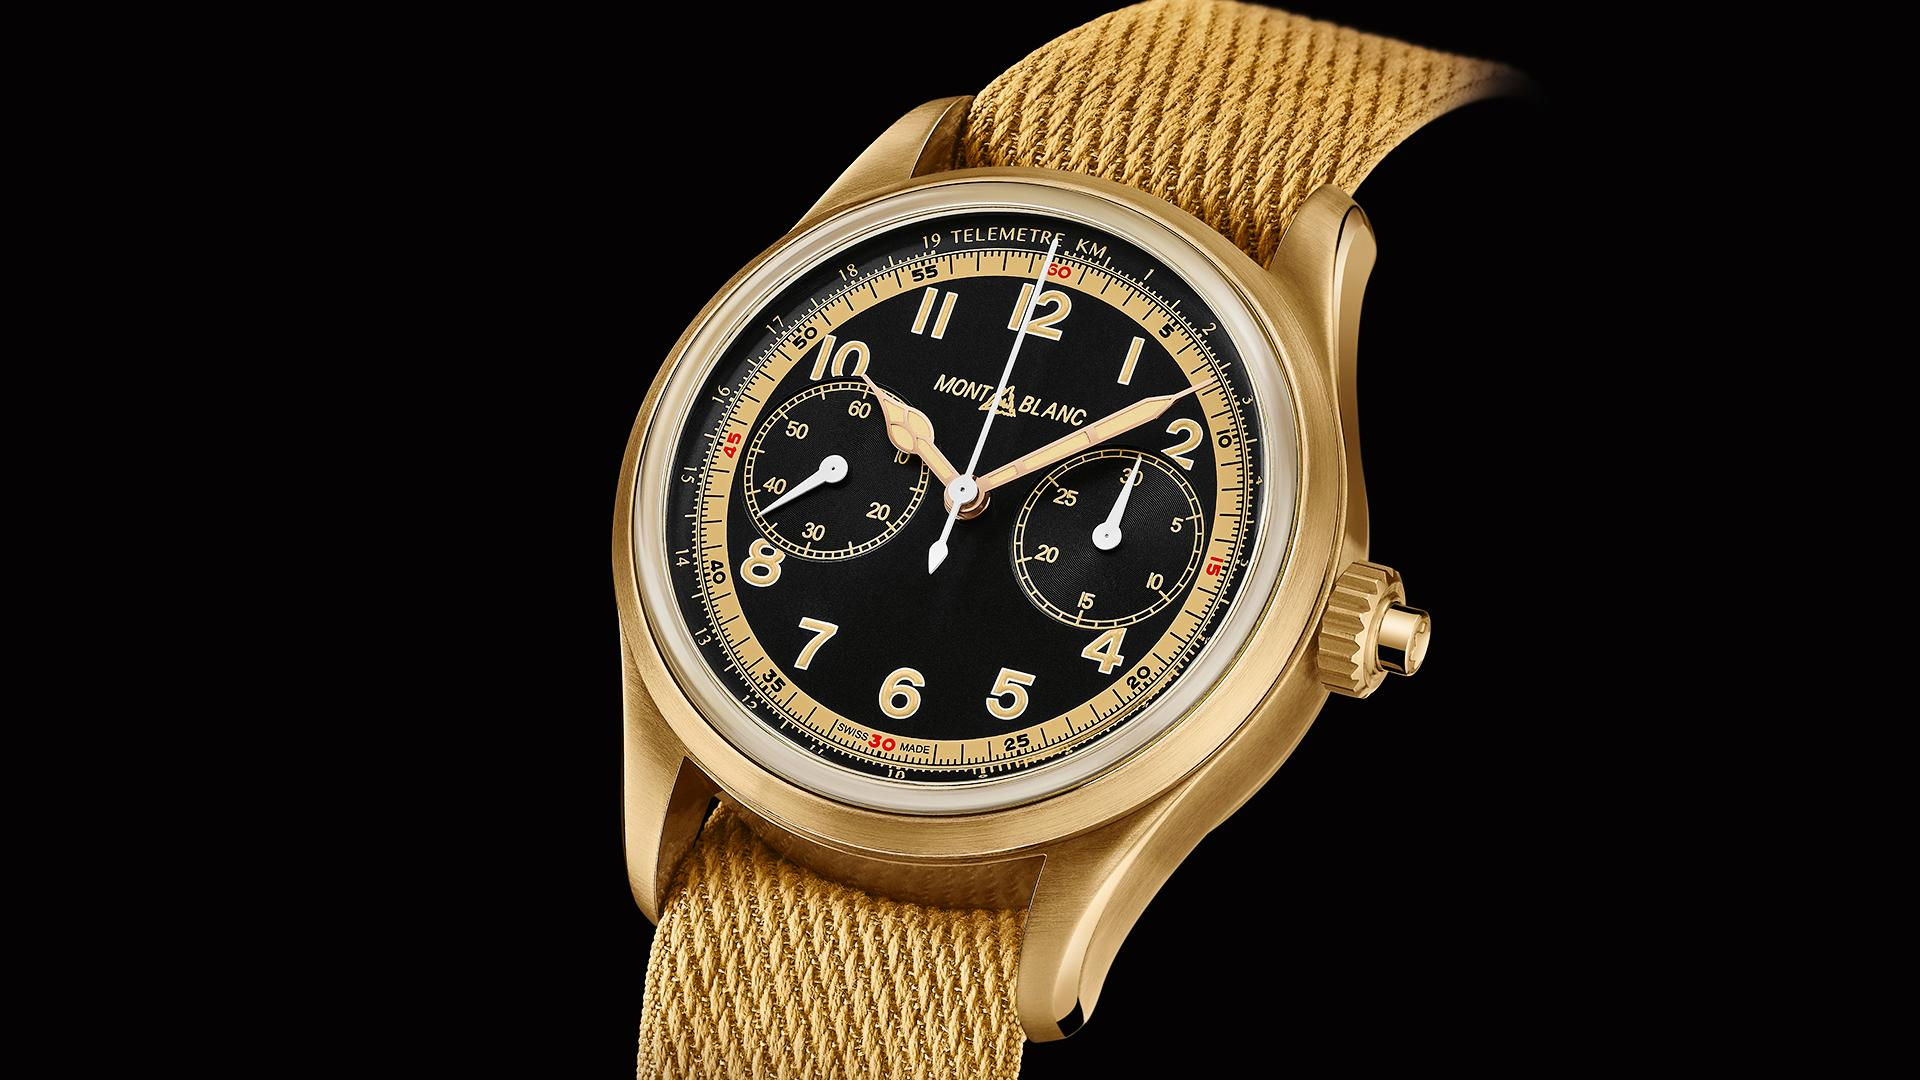 Montblanc 1858 Monopusher Chronograph watch